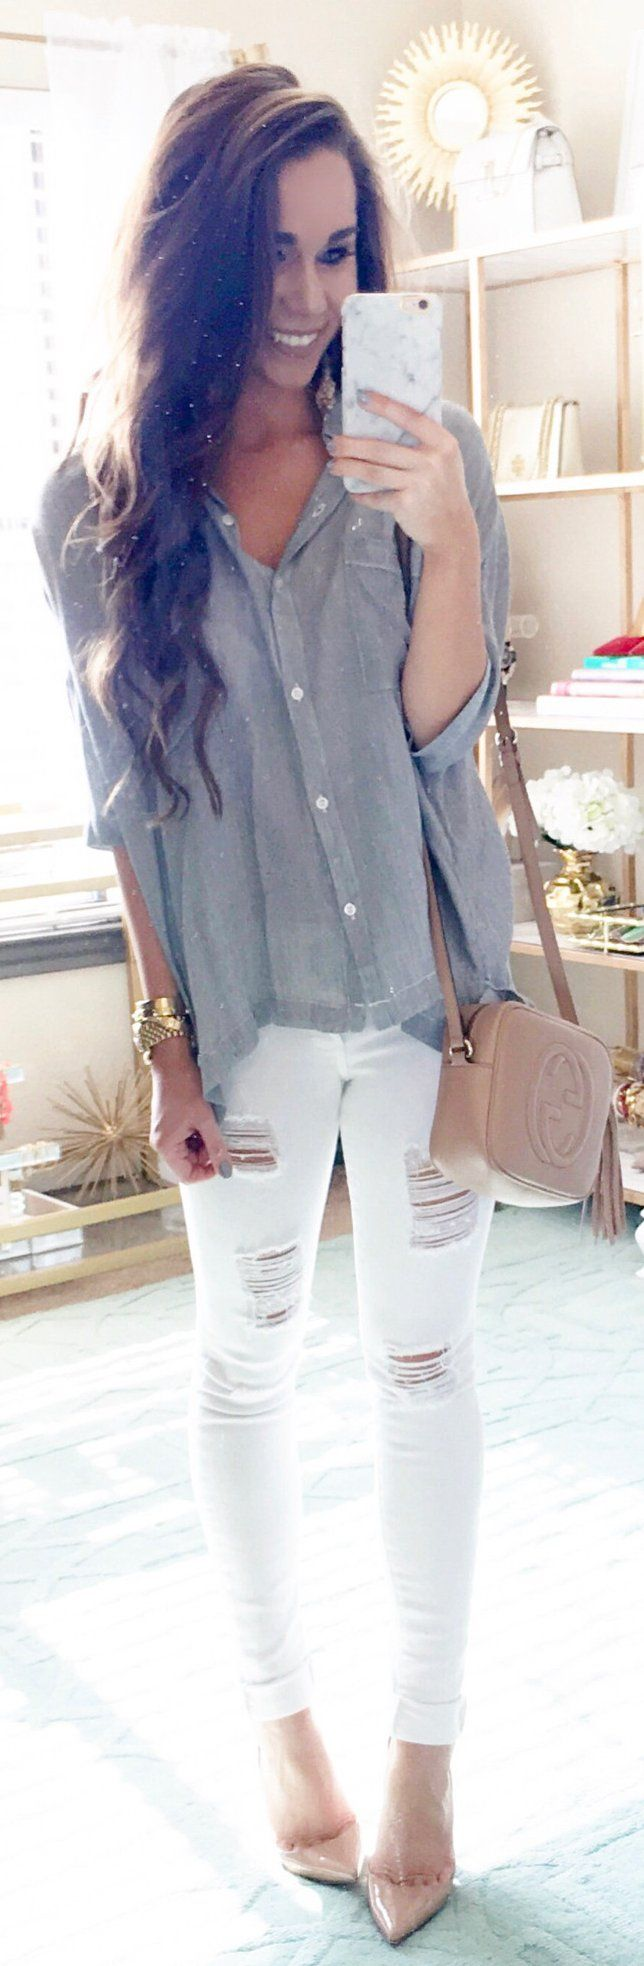 1da3b8f14f1 Grey Shirt / White Ripped Skinny Jeans / Beige Pumps / Beige Leather  Shoulder Bag